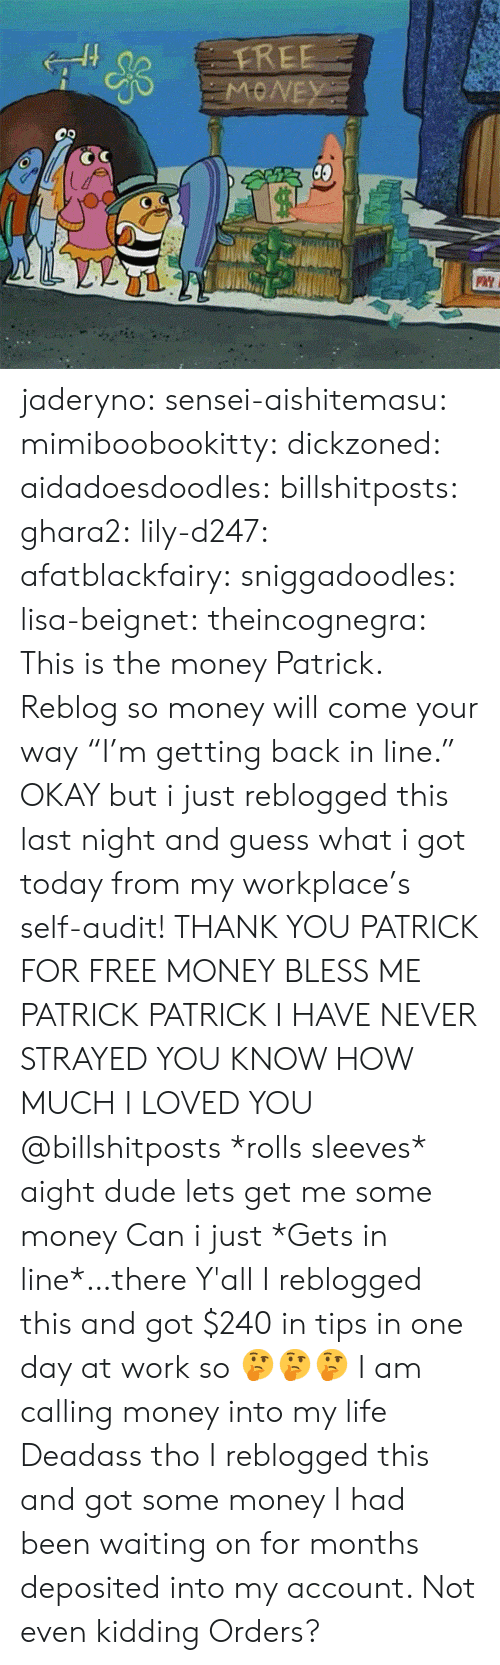 """Bless Me: FREE  19  PaY I jaderyno: sensei-aishitemasu:  mimiboobookitty:   dickzoned:  aidadoesdoodles:  billshitposts:  ghara2:  lily-d247:  afatblackfairy:  sniggadoodles:  lisa-beignet:  theincognegra:  This is the money Patrick. Reblog so money will come your way  """"I'm getting back in line.""""  OKAY but i just reblogged this last night and guess what i got today from my workplace's self-audit! THANK YOU PATRICK FOR FREE MONEY  BLESS ME PATRICK  PATRICK I HAVE NEVER STRAYED YOU KNOW HOW MUCH I LOVED YOU  @billshitposts  *rolls sleeves* aight dude lets get me some money  Can i just *Gets in line*…there  Y'all I reblogged this and got $240 in tips in one day at work so 🤔🤔🤔   I am calling money into my life   Deadass tho I reblogged this and got some money I had been waiting on for months deposited into my account. Not even kidding   Orders?"""